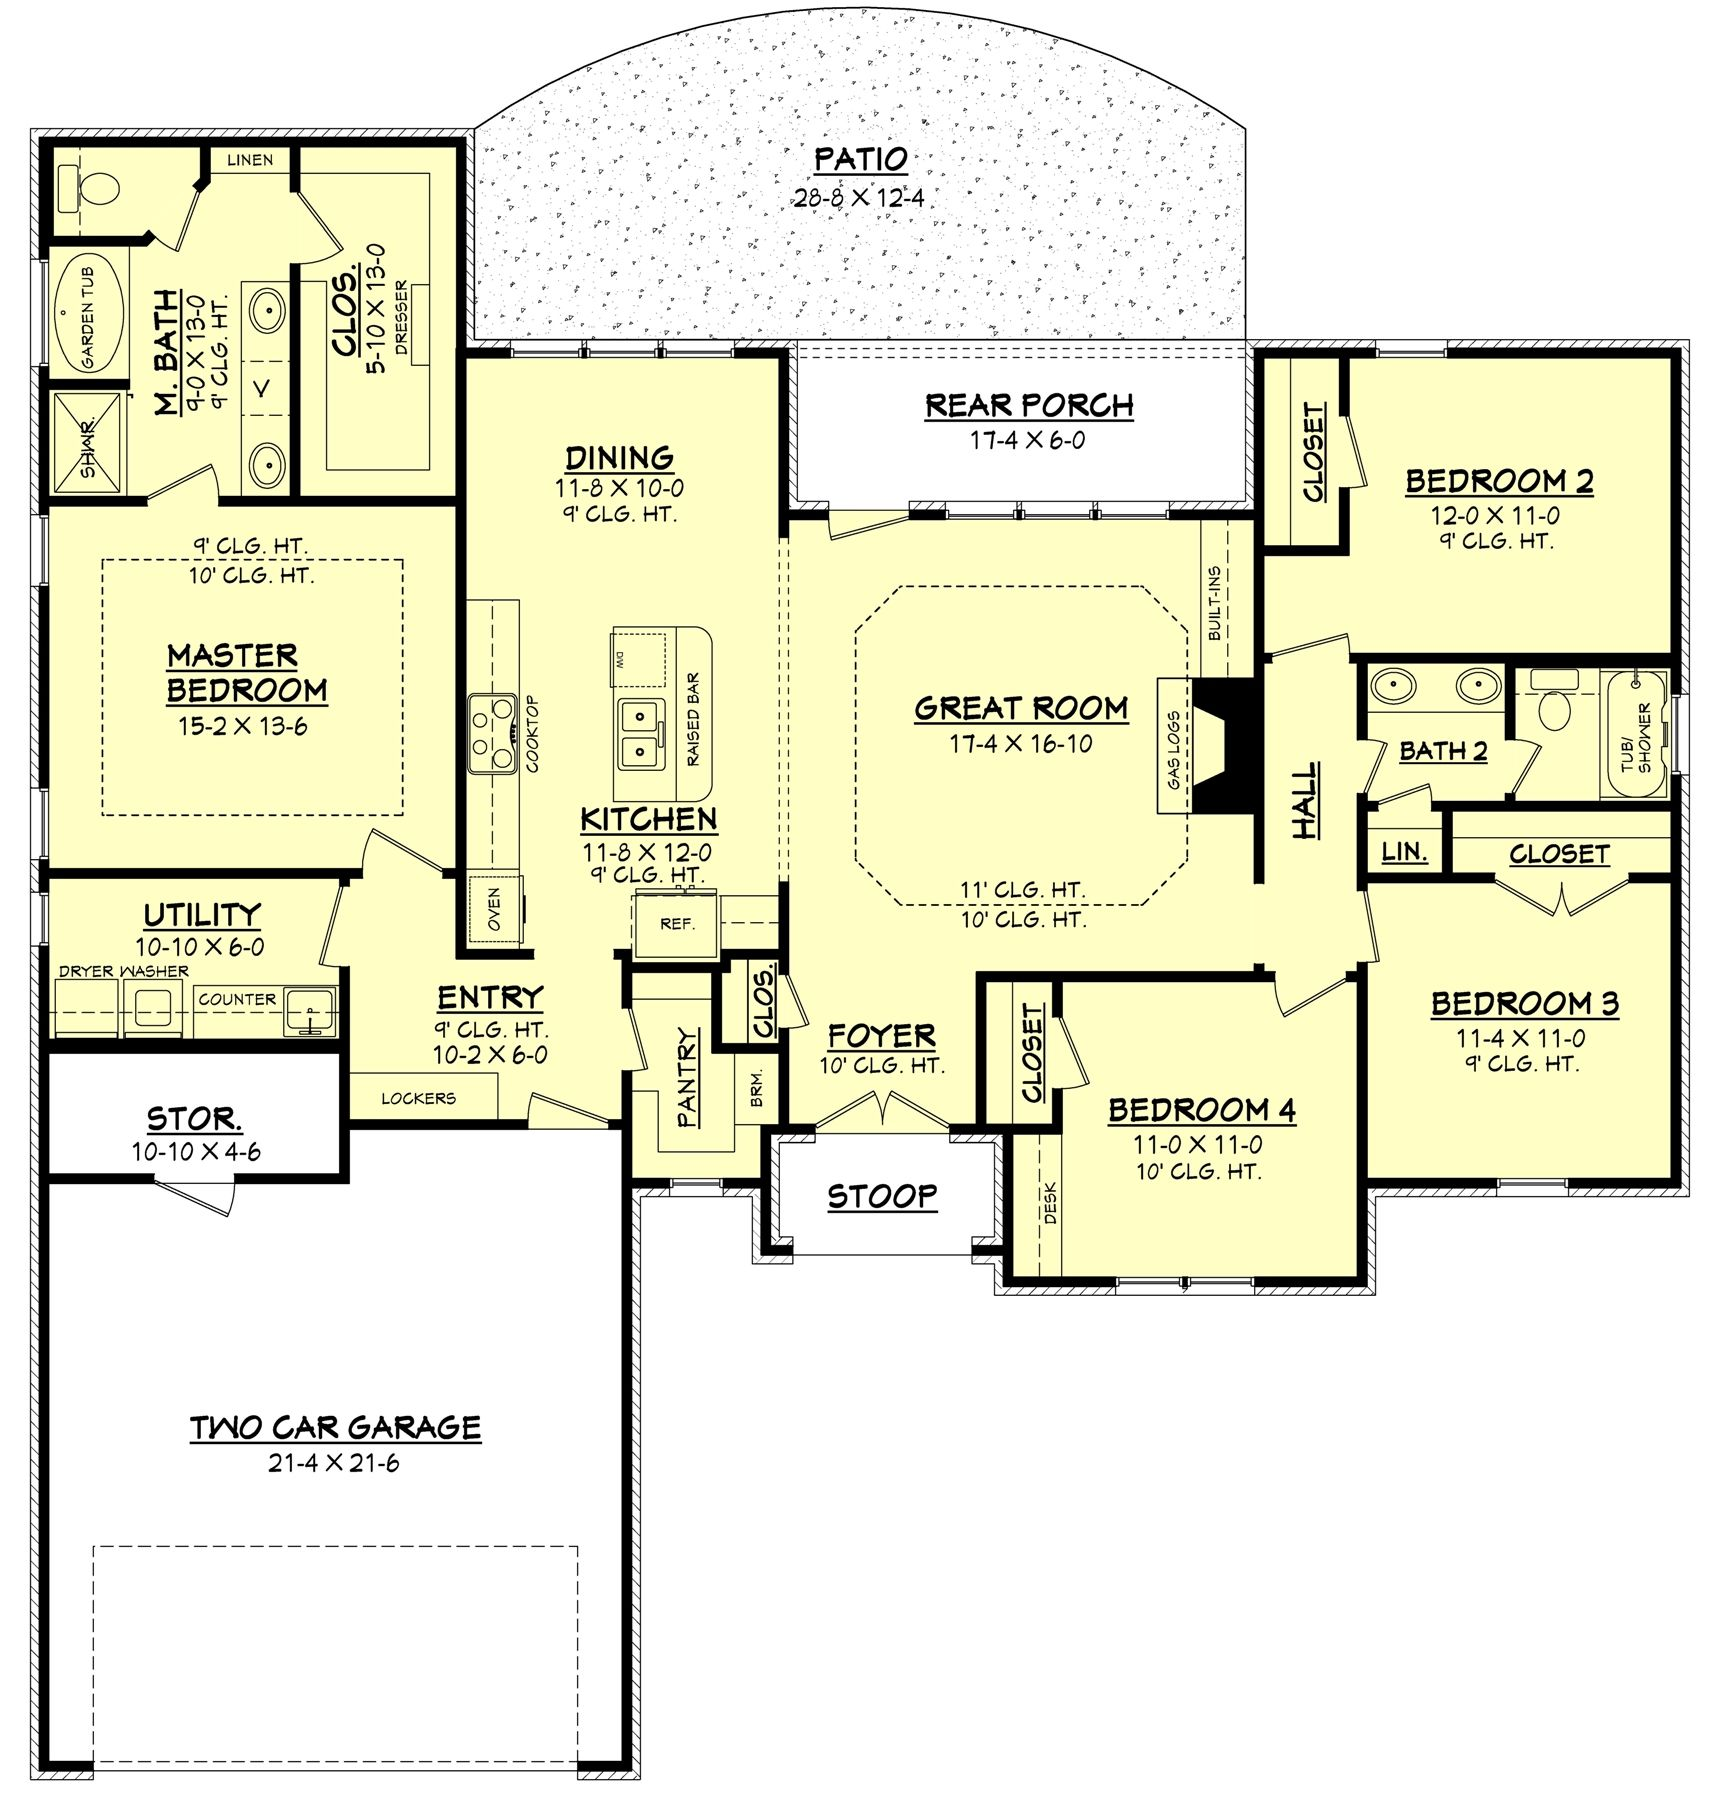 Ranch Style House Plan 4 Beds 2 Baths 1875 Sq Ft 430 87 Main Floor Houseplans Com